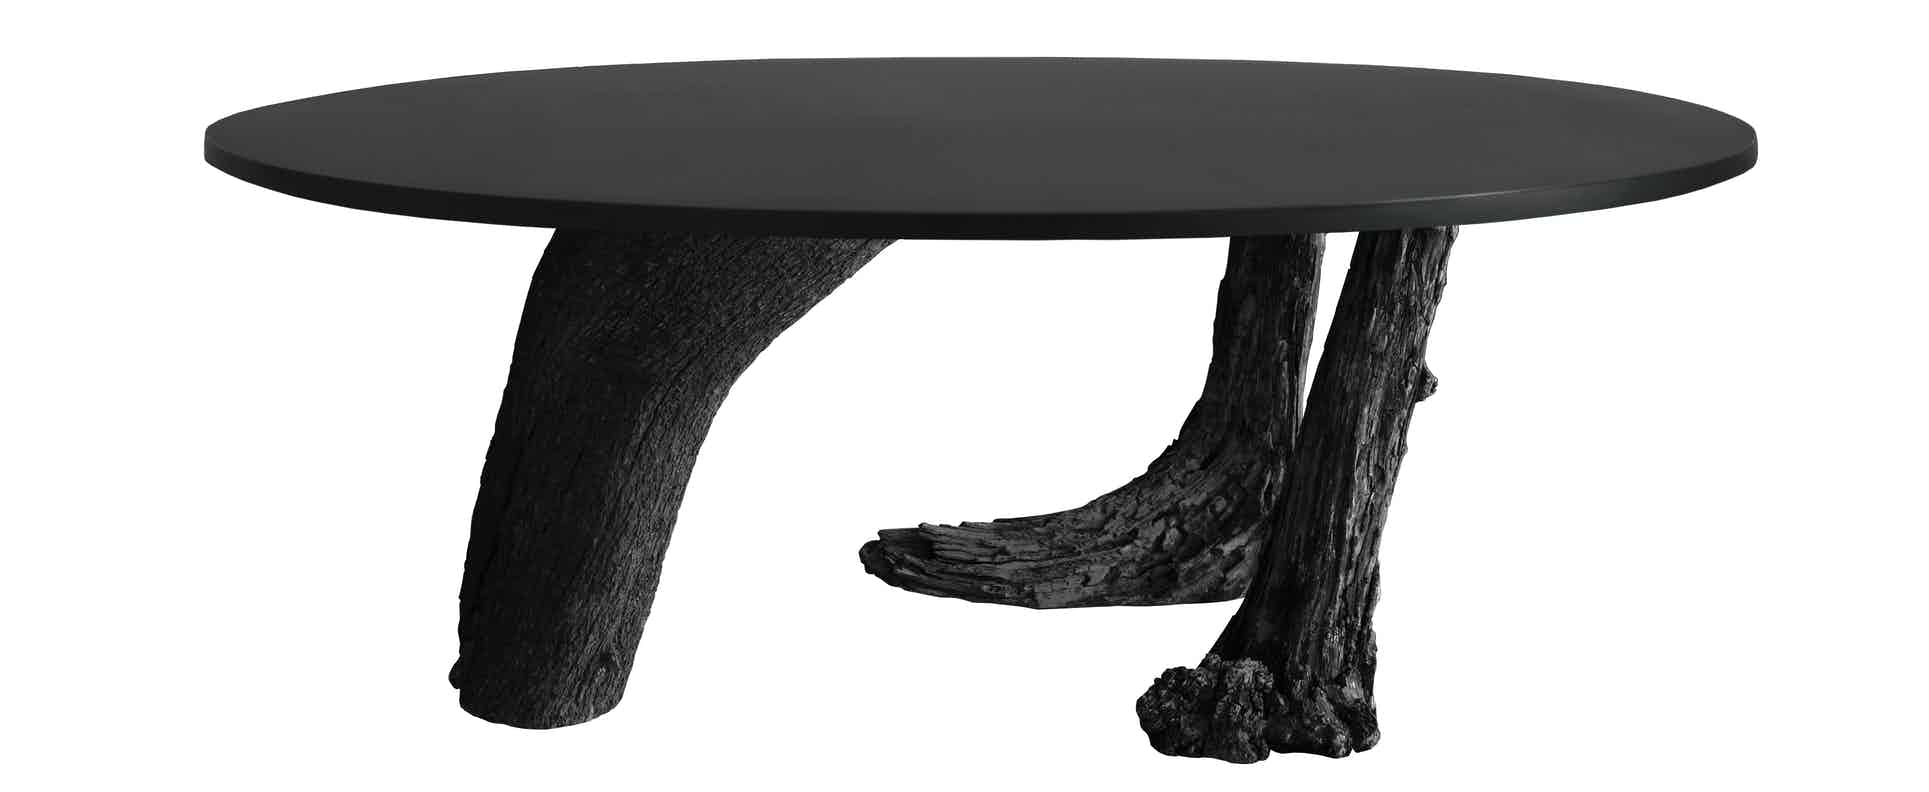 Imperfetto-lab-antipode-coffee-table-thumbnail-haute-living